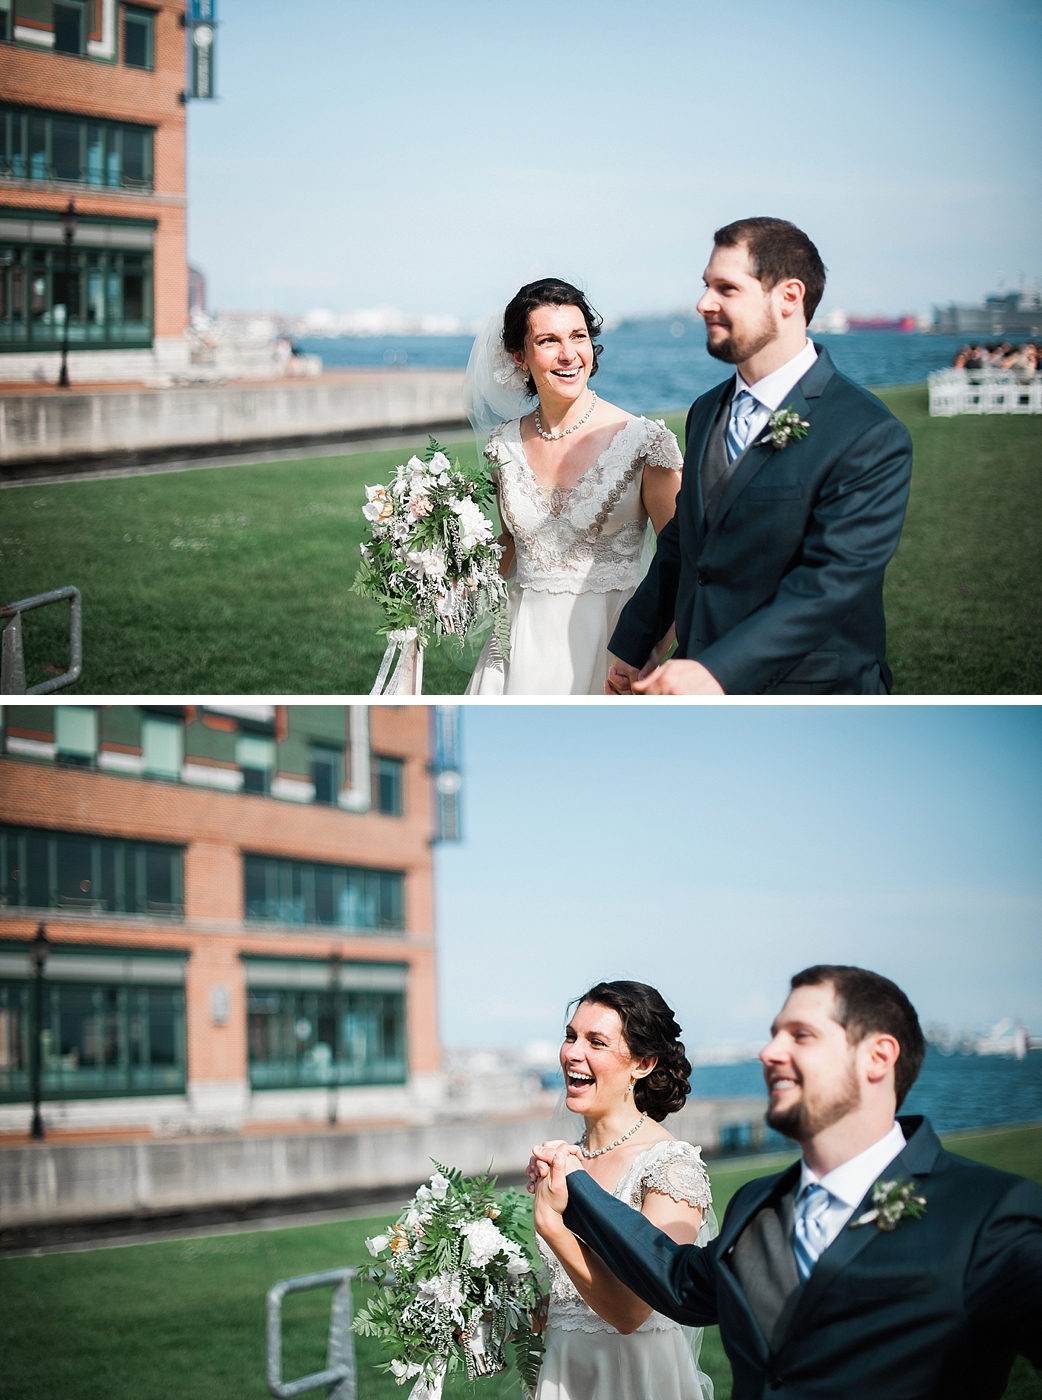 2225-Baltimore-wedding-photographer-kirsten-marie-photography